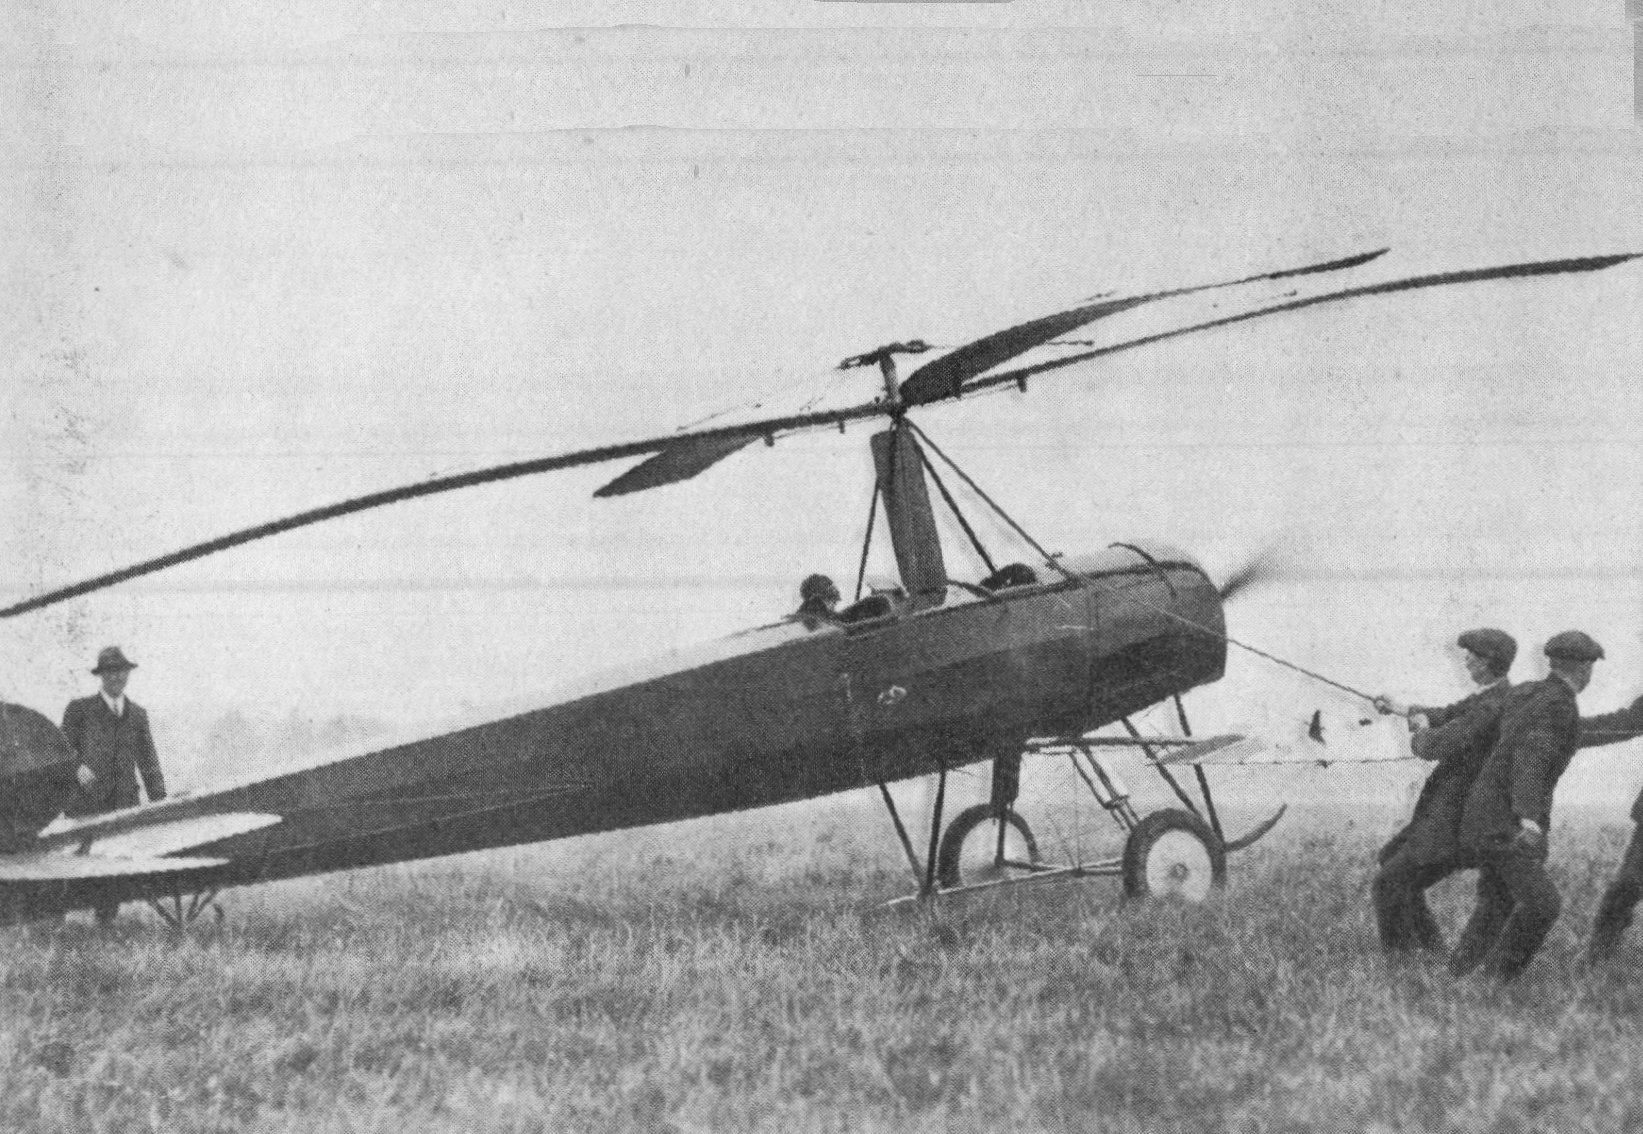 Autogyro_at_Farnborough,_1925_(Our_Generation,_1938)